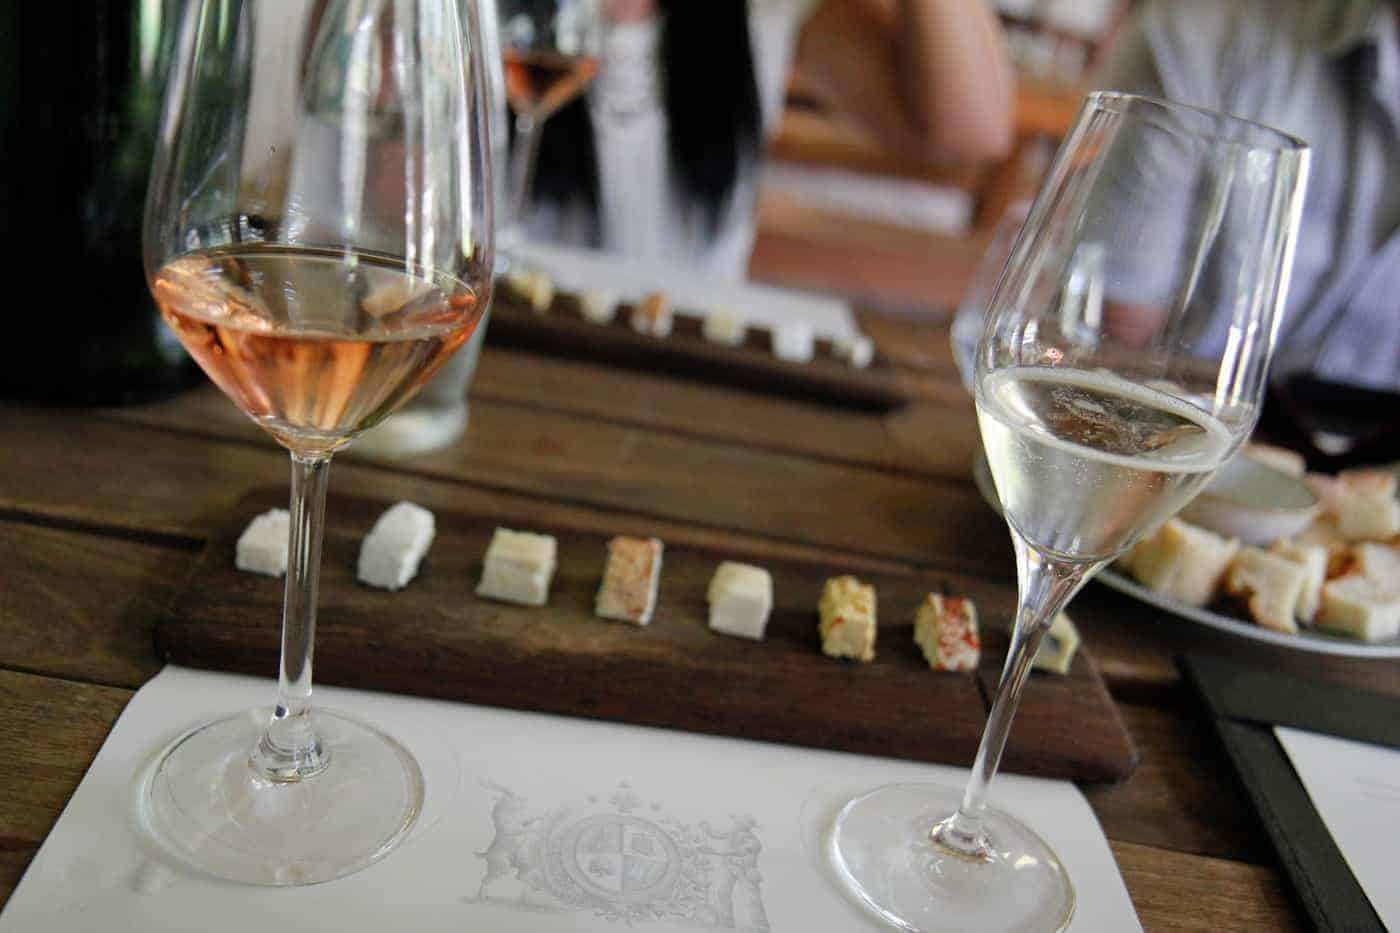 fairview winery cape town itinerary